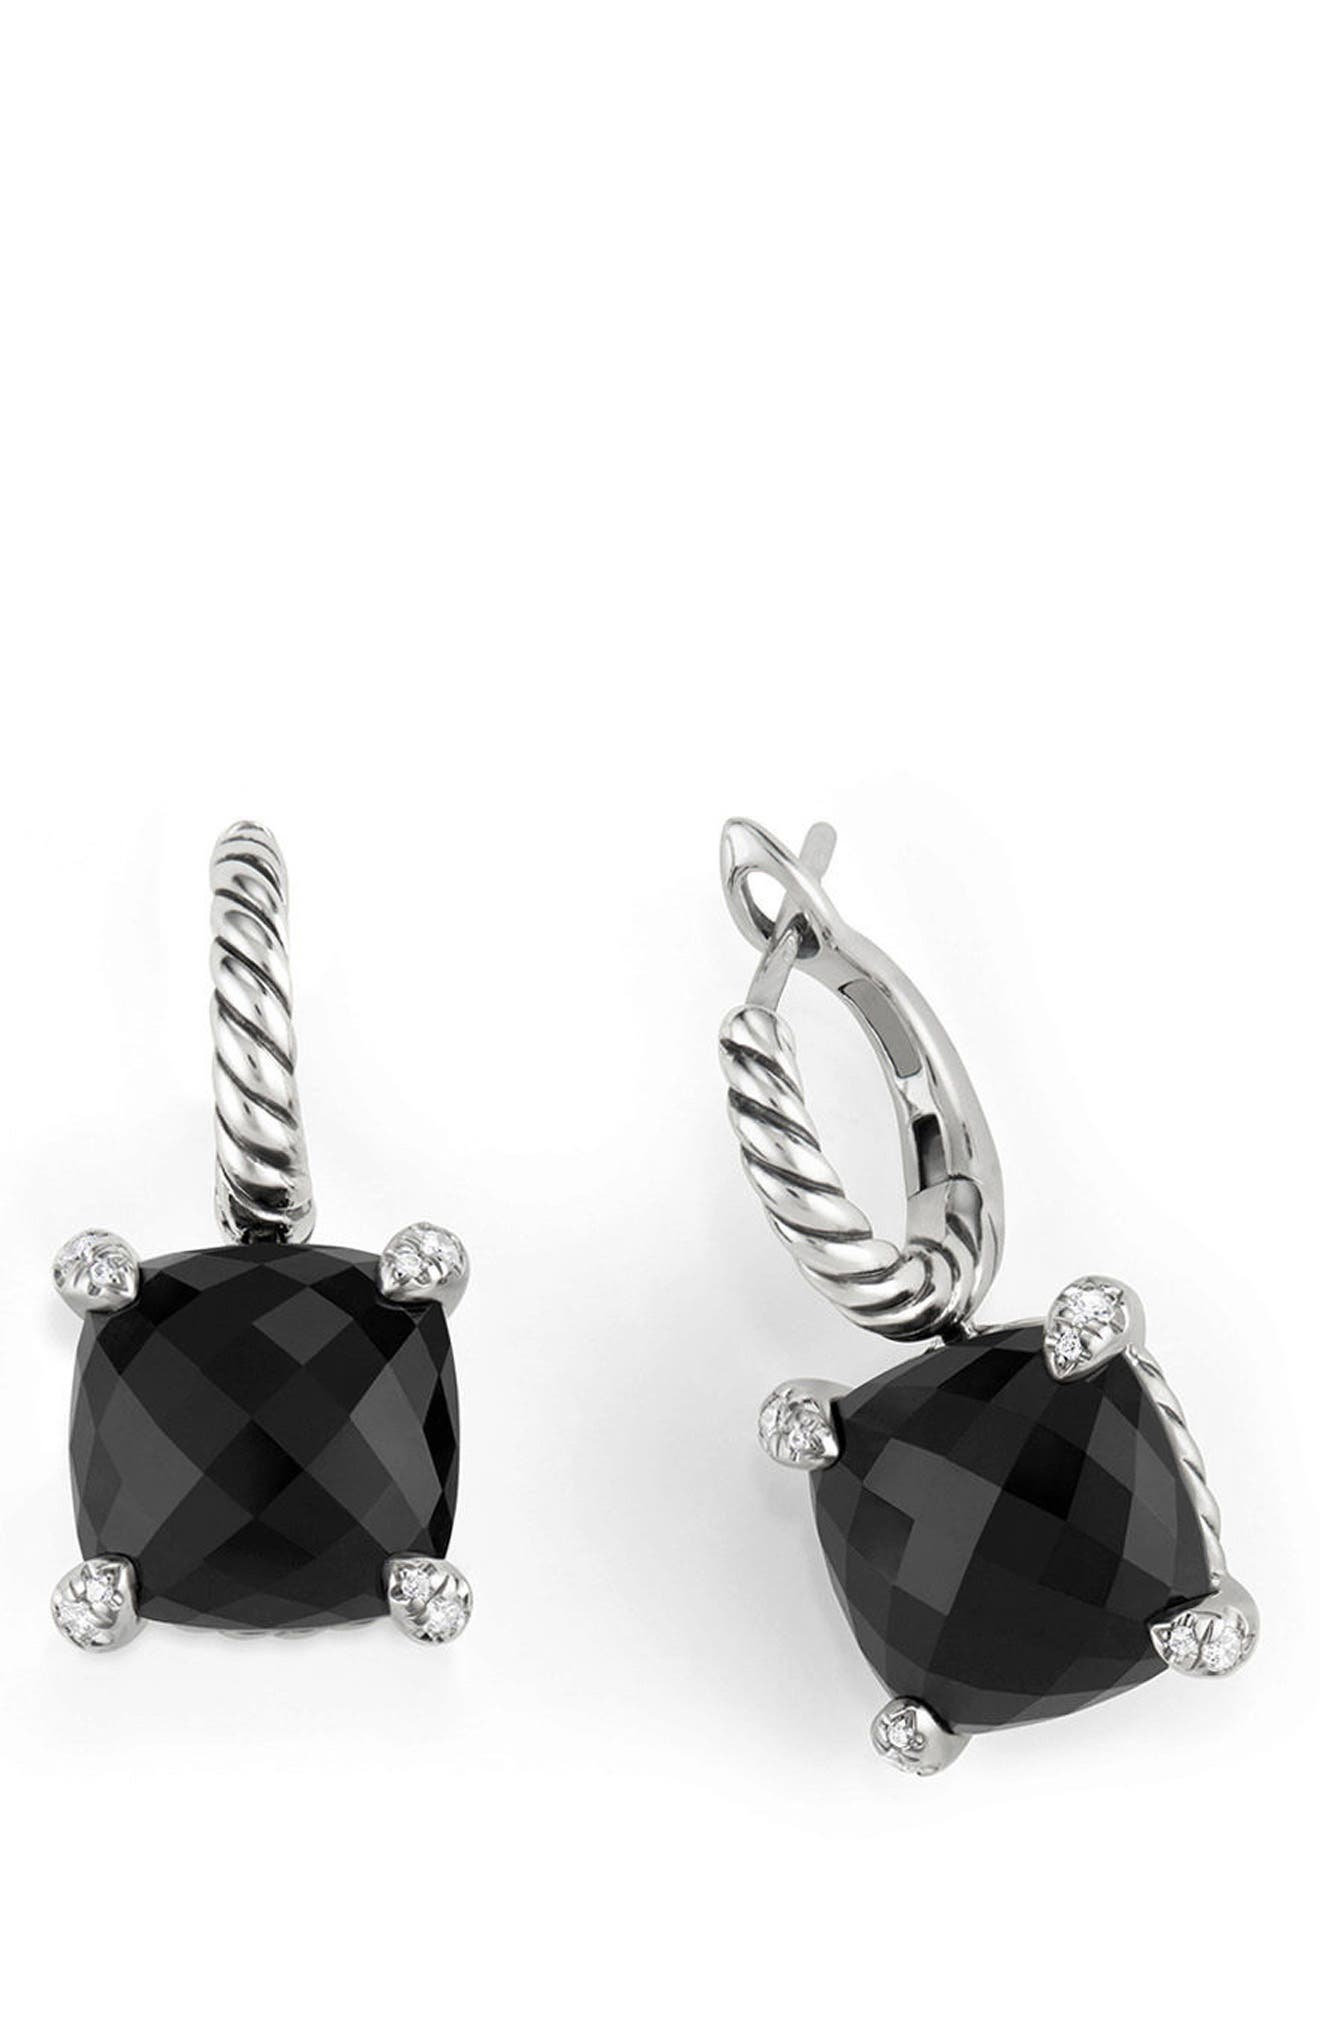 Châtelaine Drop Earrings with Diamonds,                             Main thumbnail 1, color,                             BLACK ONYX?